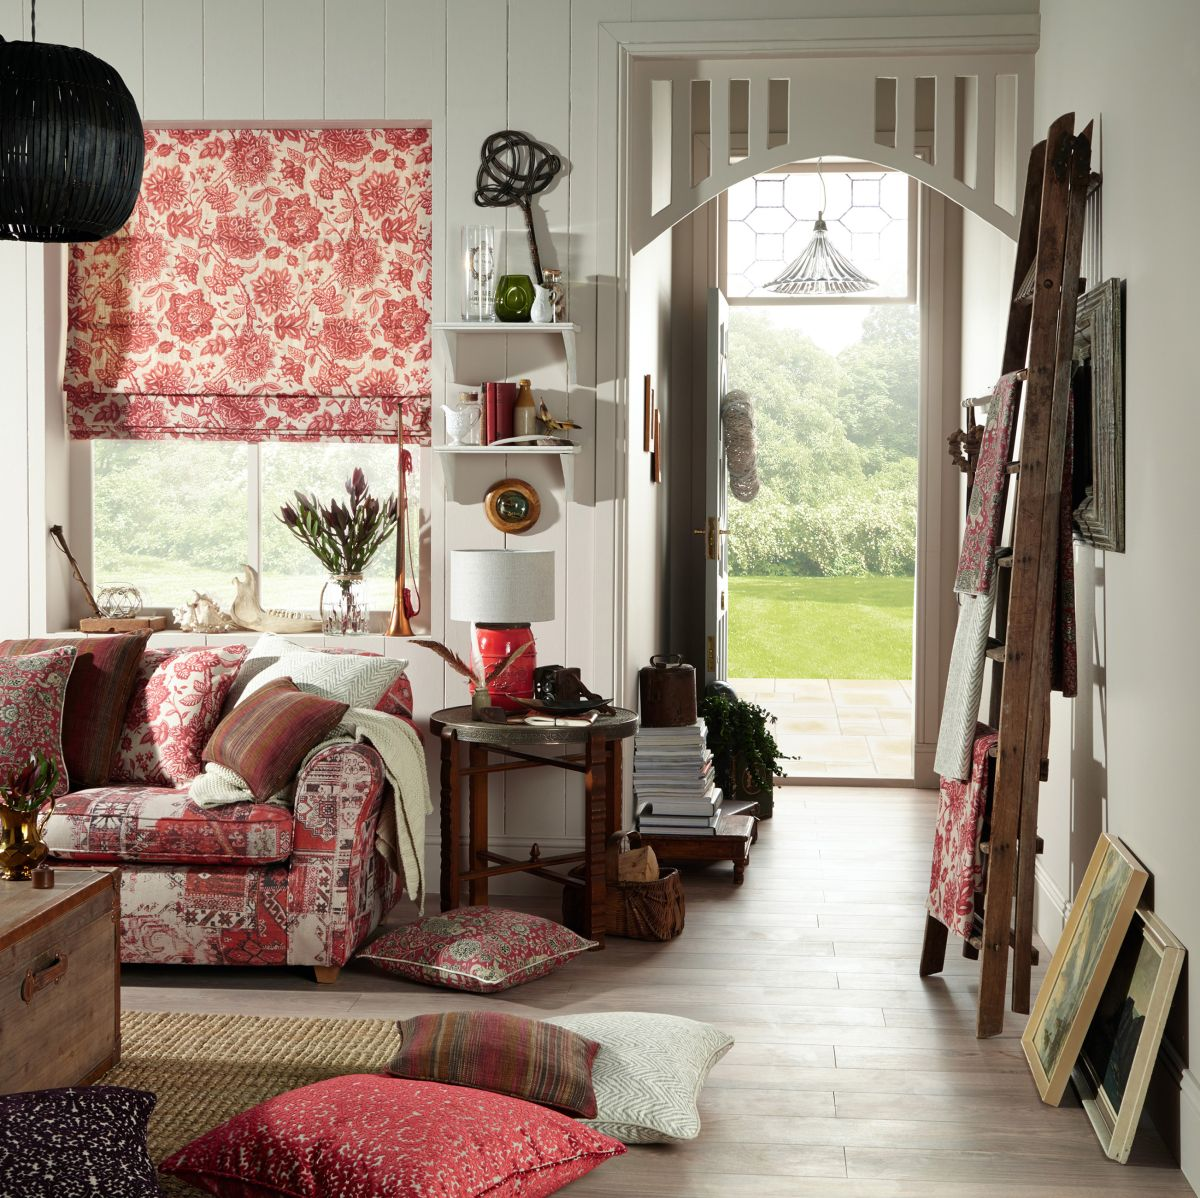 Cottage Living Rooms 11 Rustic Decorating Ideas Real Homes